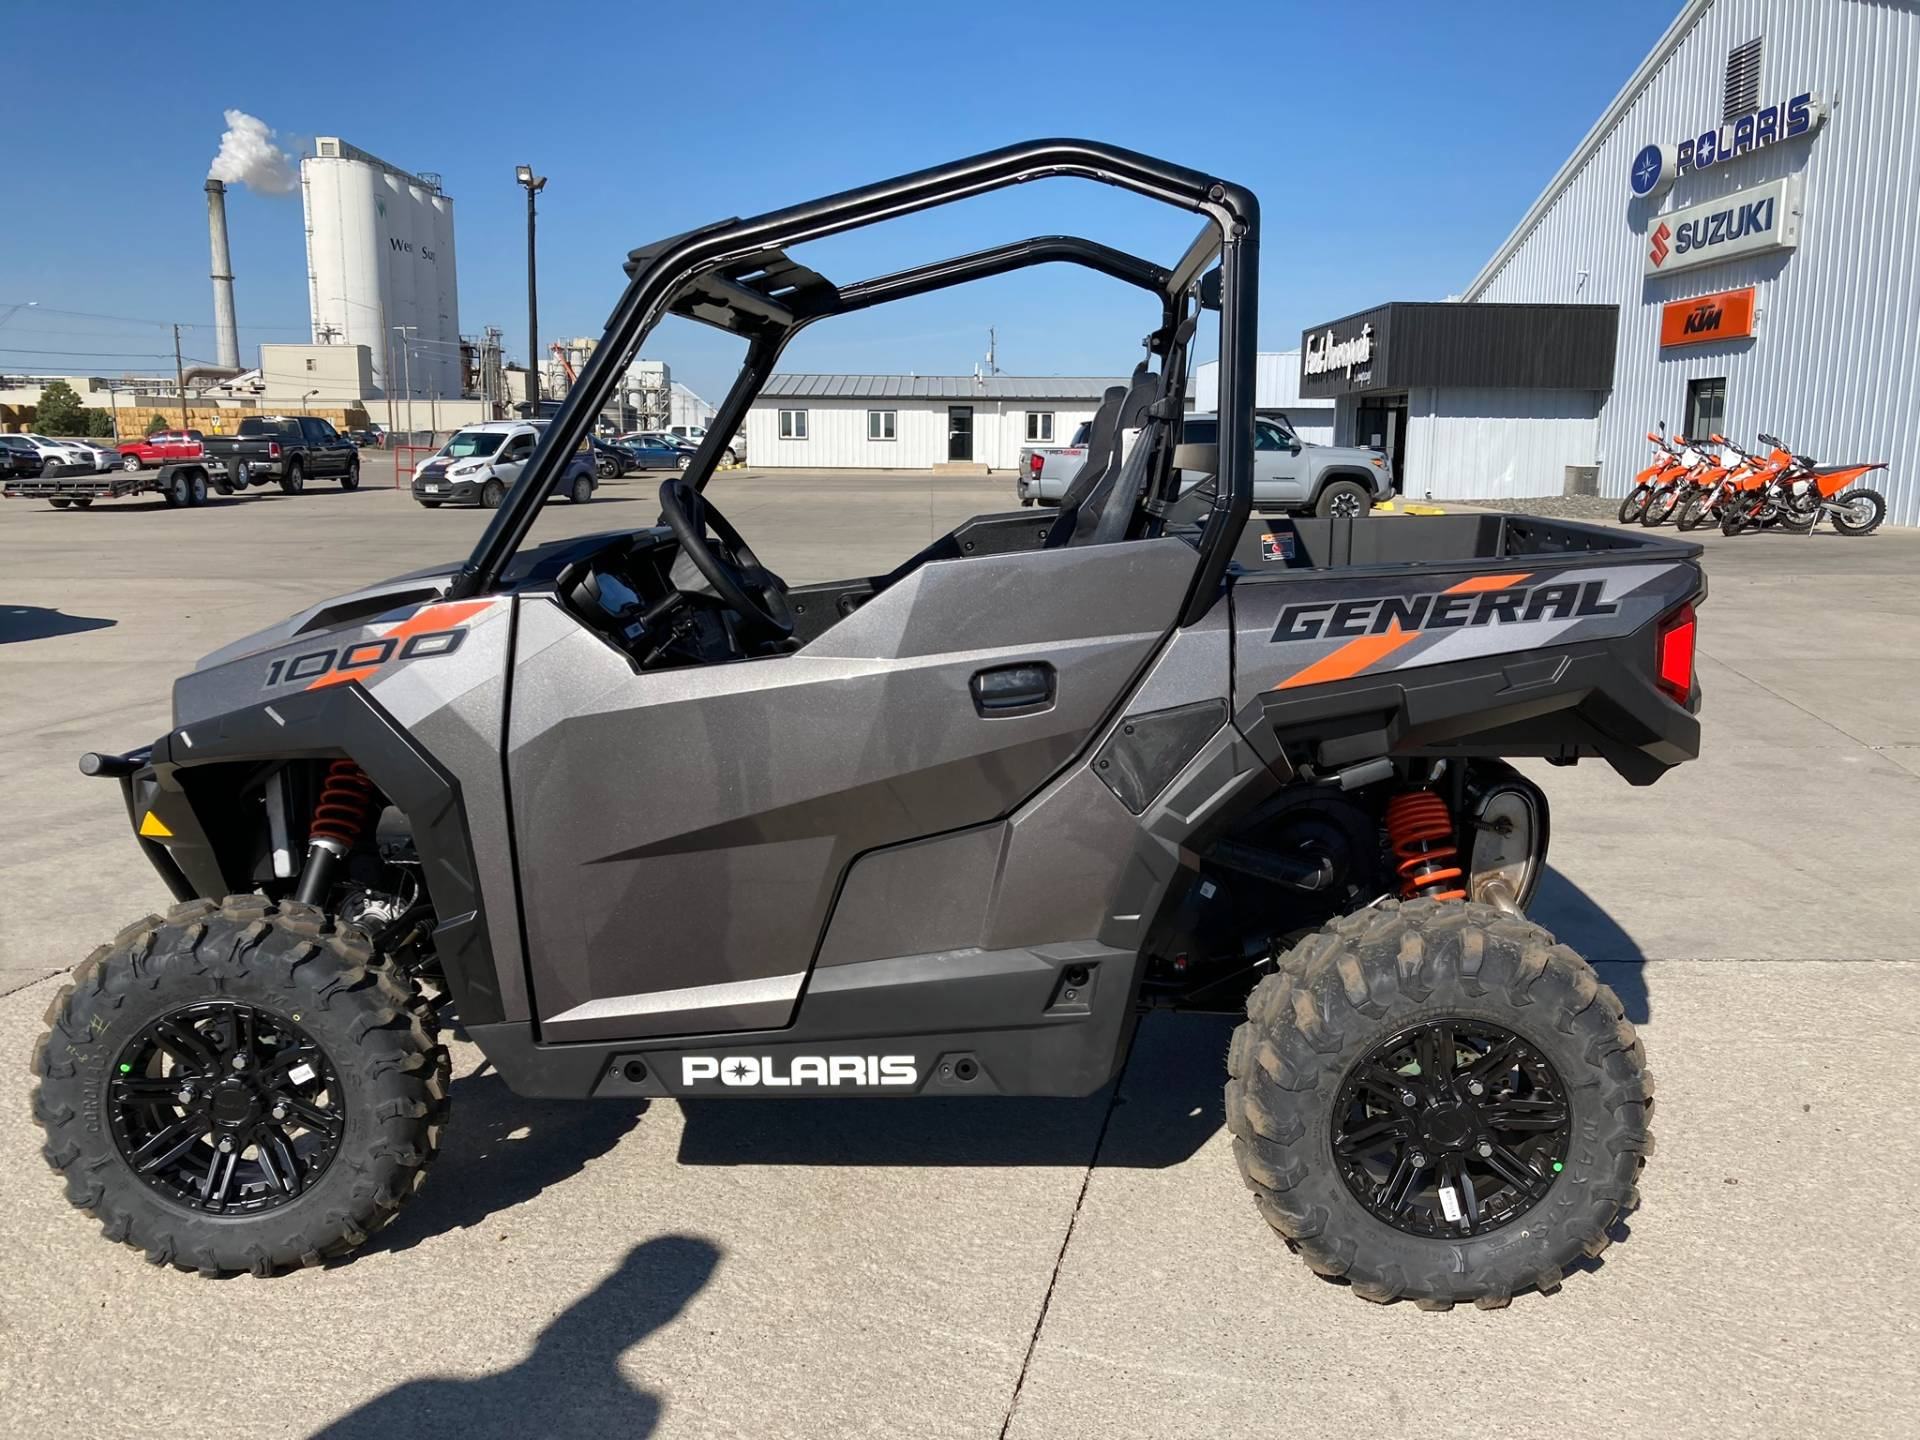 2021 Polaris General 1000 Premium in Scottsbluff, Nebraska - Photo 1